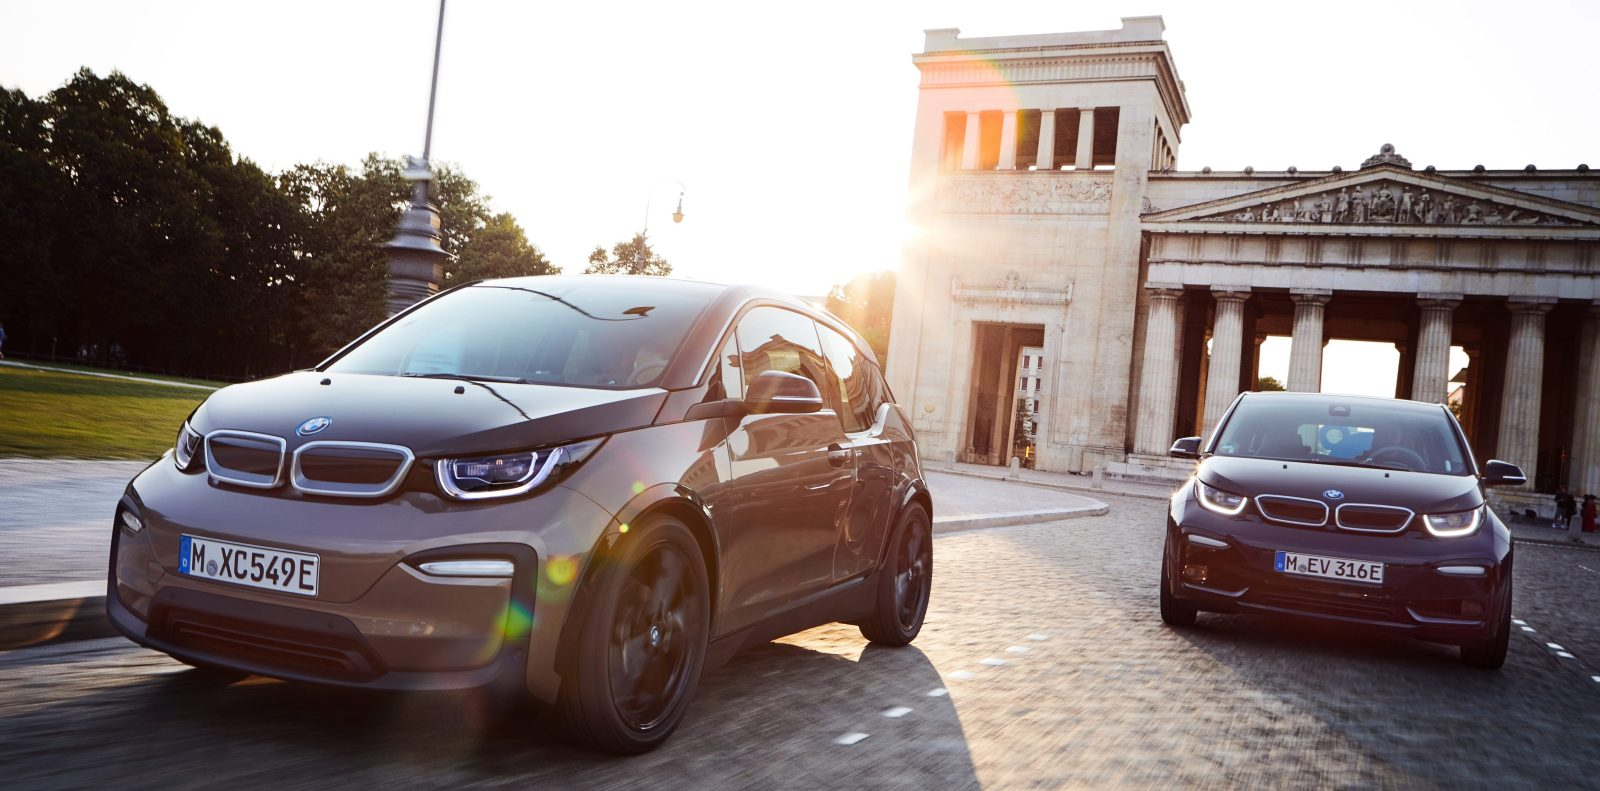 Bmw Unveils I3 Battery Upgrade For Over 160 Miles 260 Km Of Range